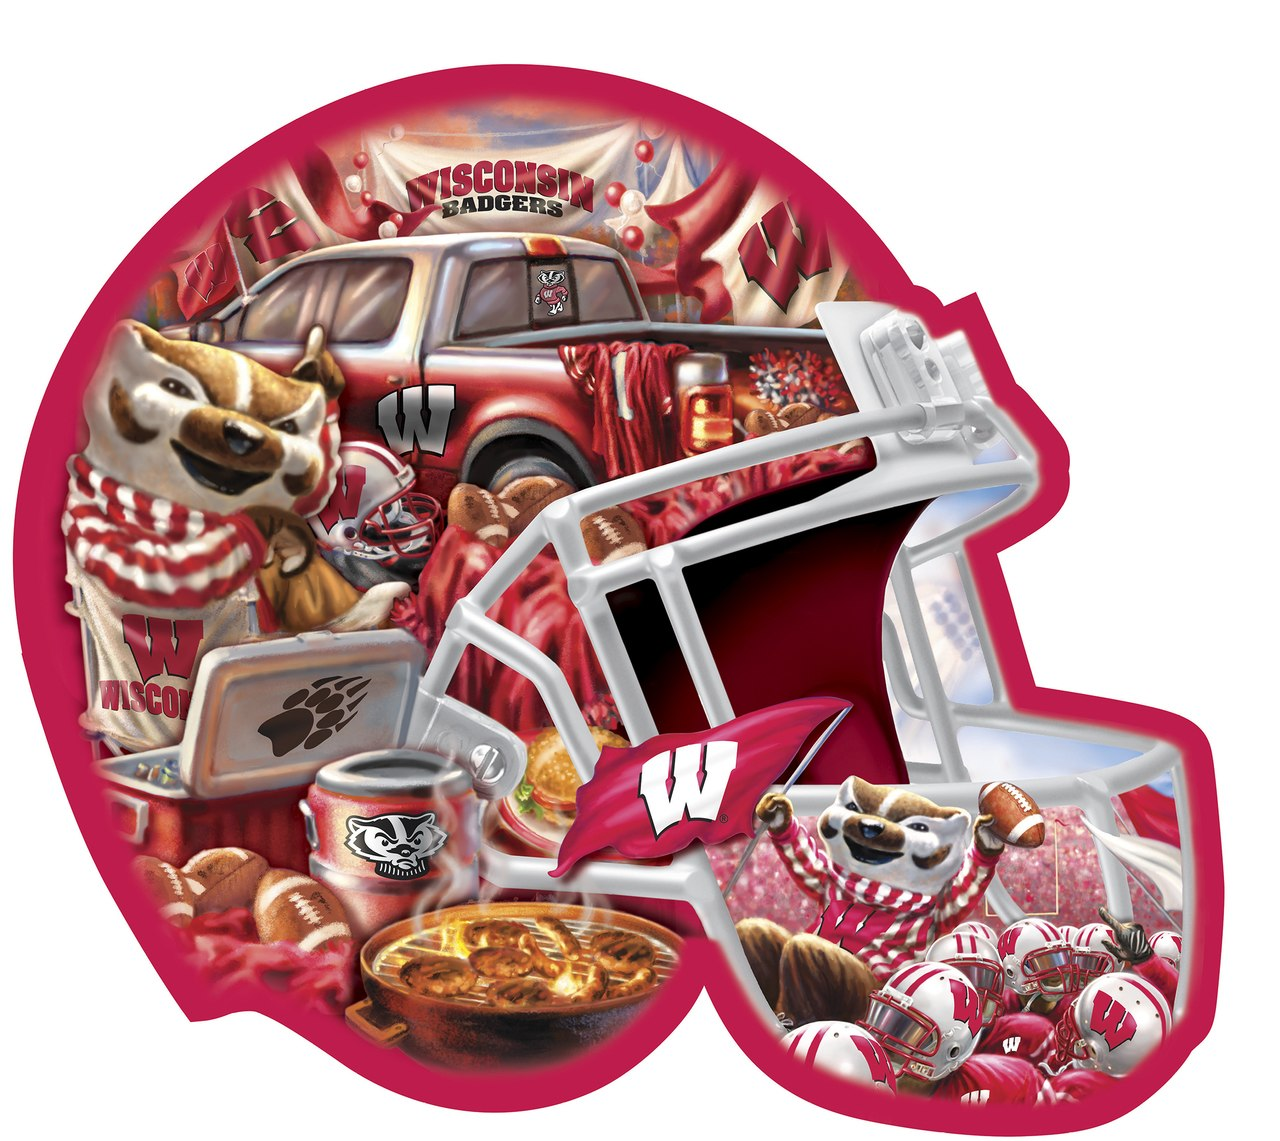 Wisconsin Helmet - 500pc Shaped Jigsaw Puzzle by Masterpieces  			  					NEW